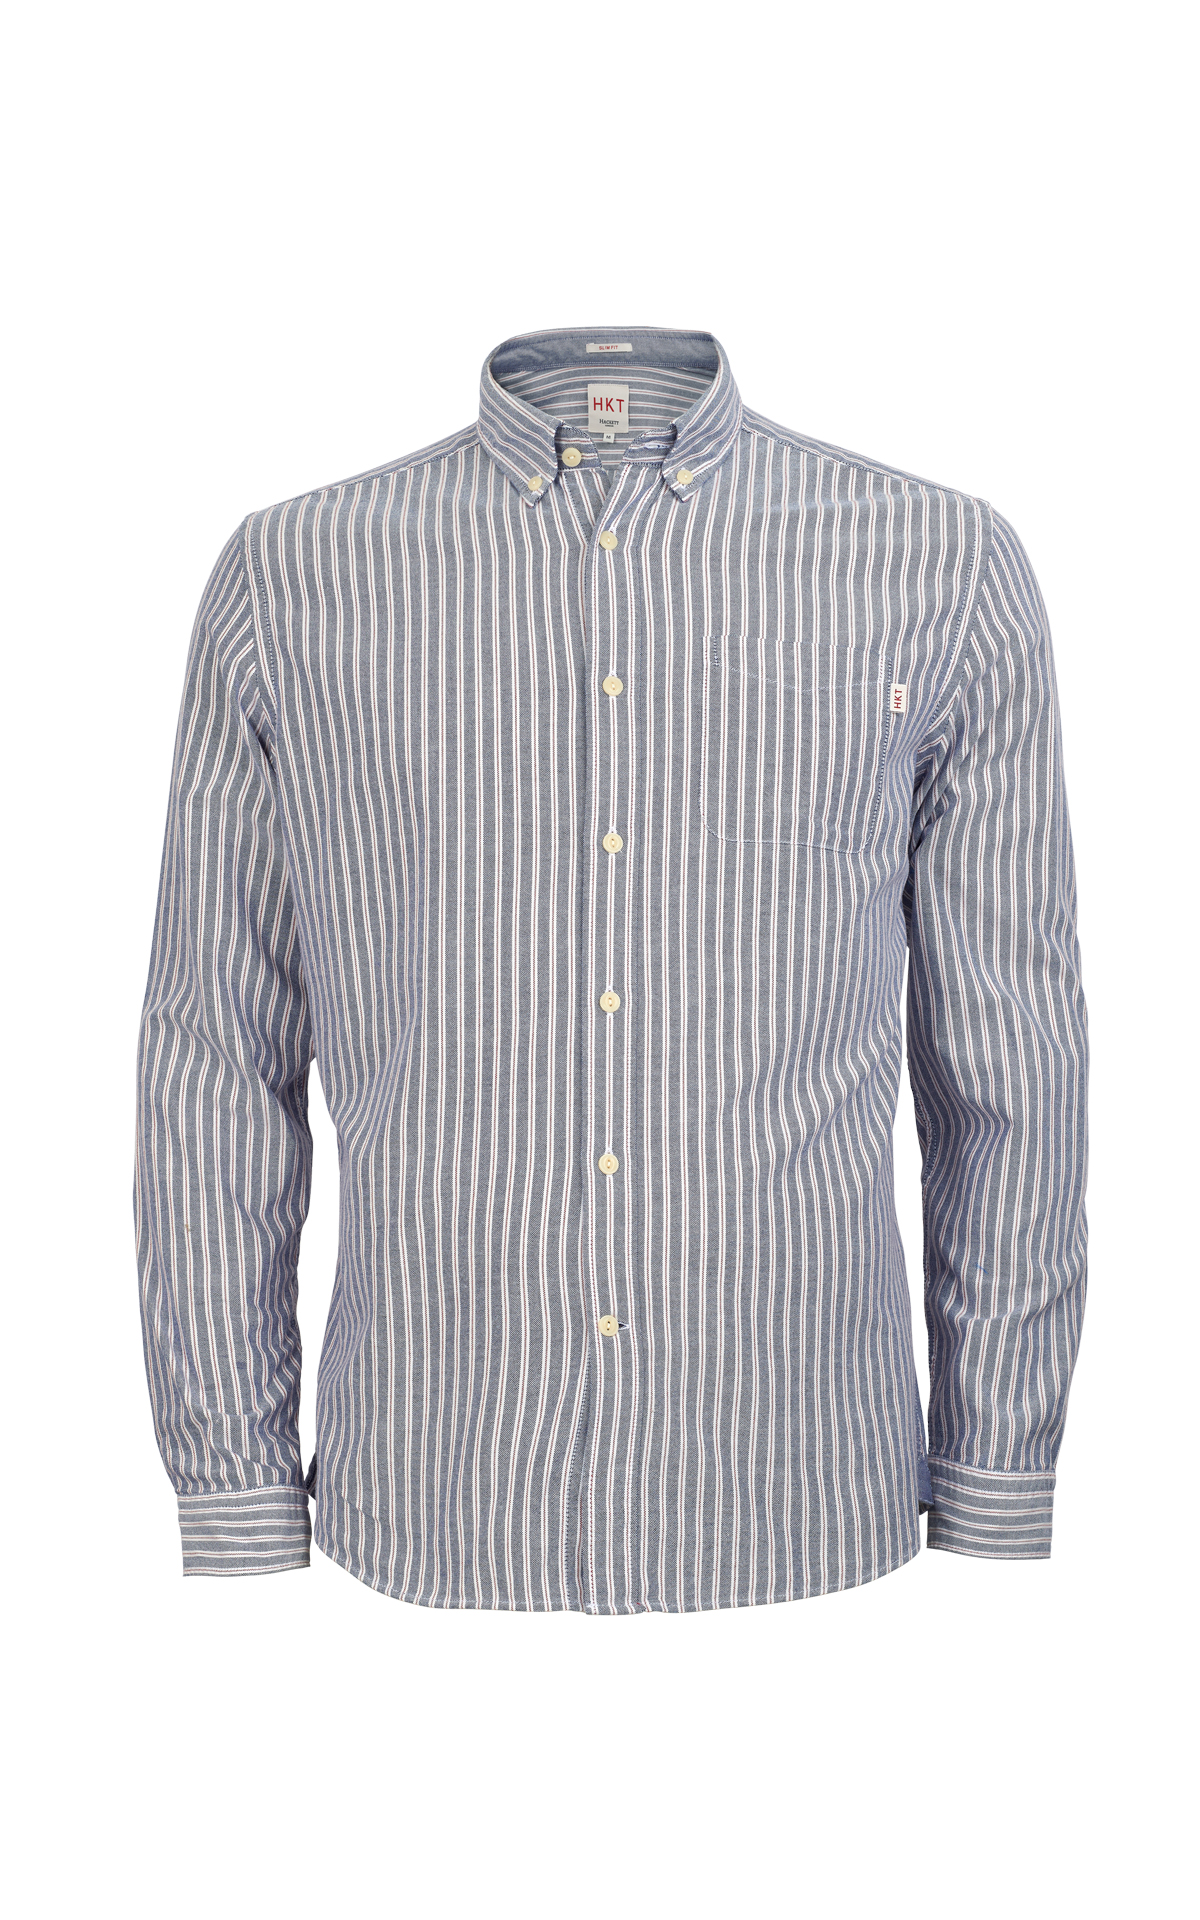 Blue striped shirt Hackett london